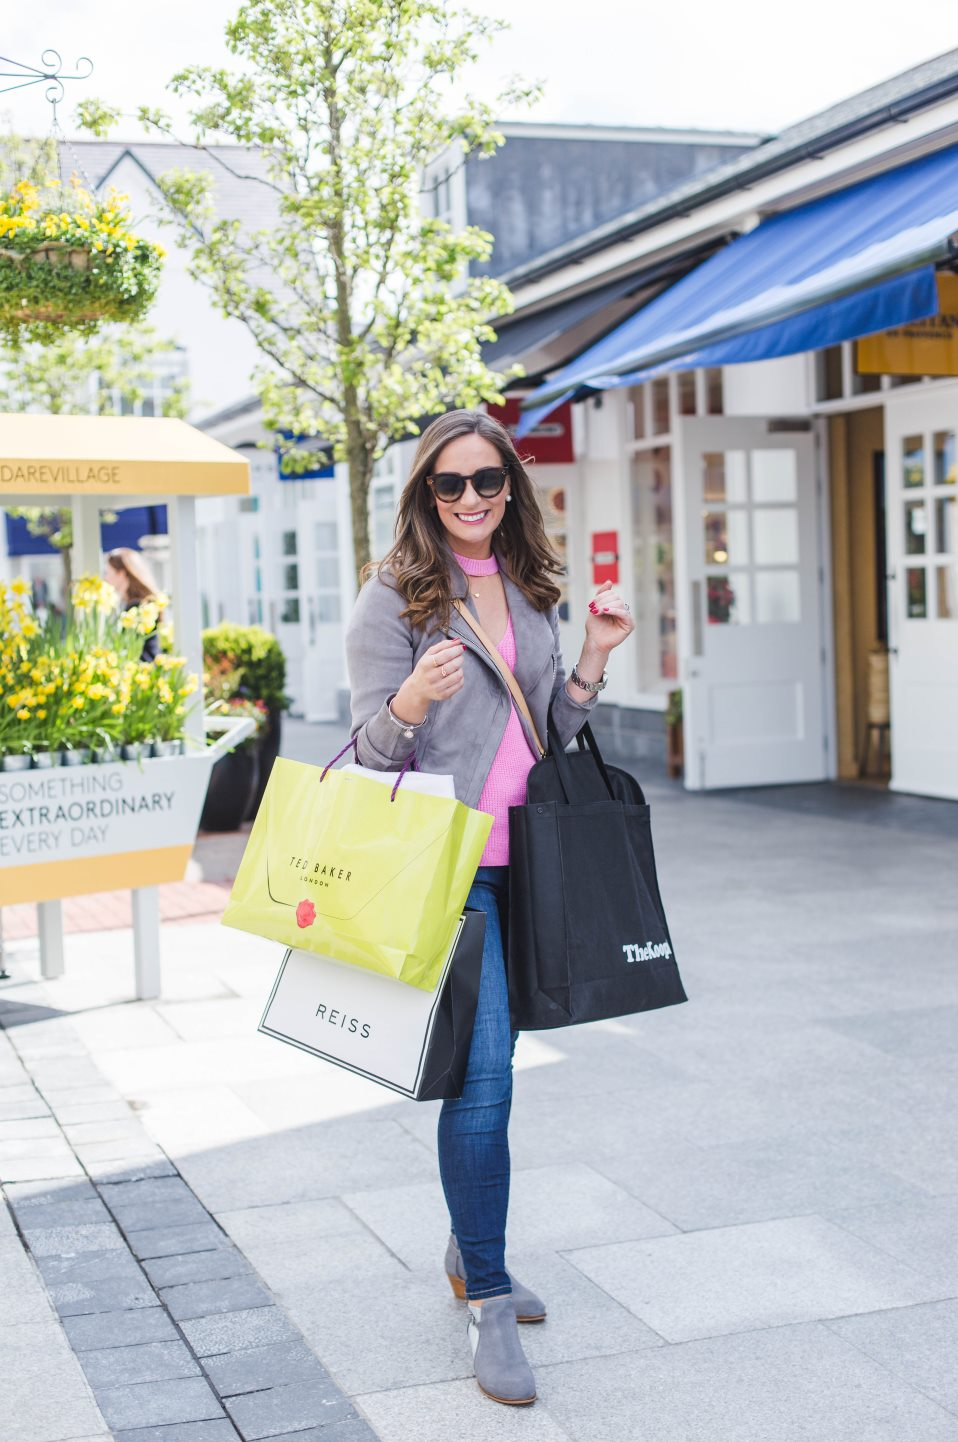 The Style Fairy enjoying shopping at Kildare Village